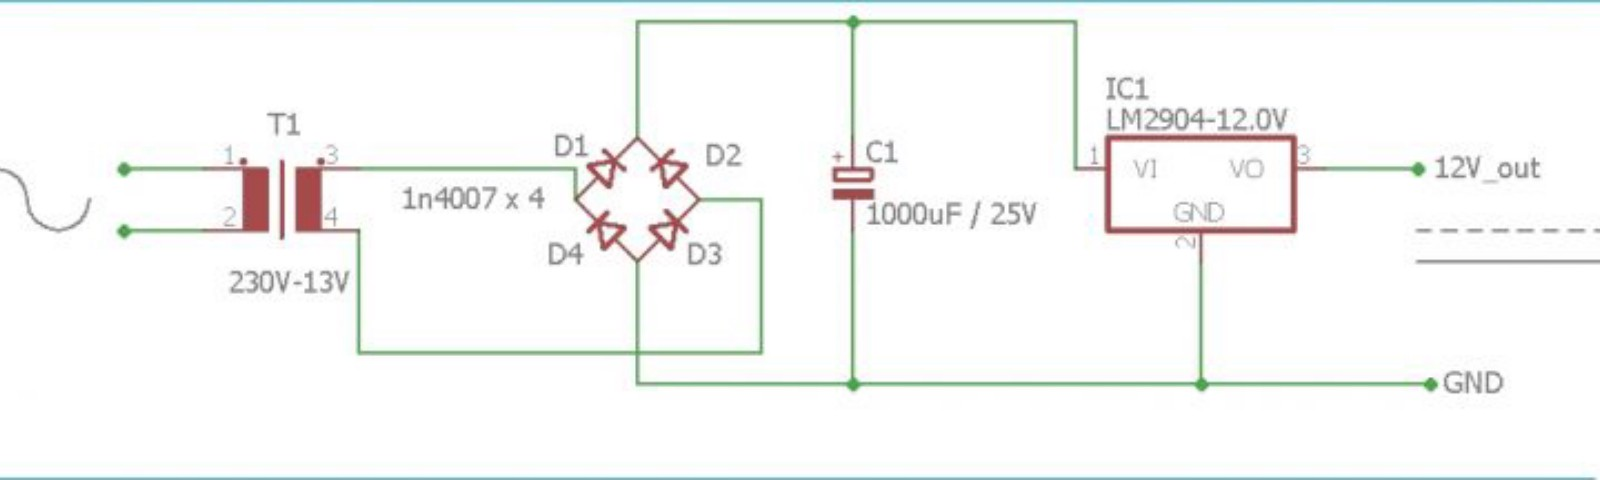 ac to dc converter circuit | 220v to 12v dc converter circuit ...  medium